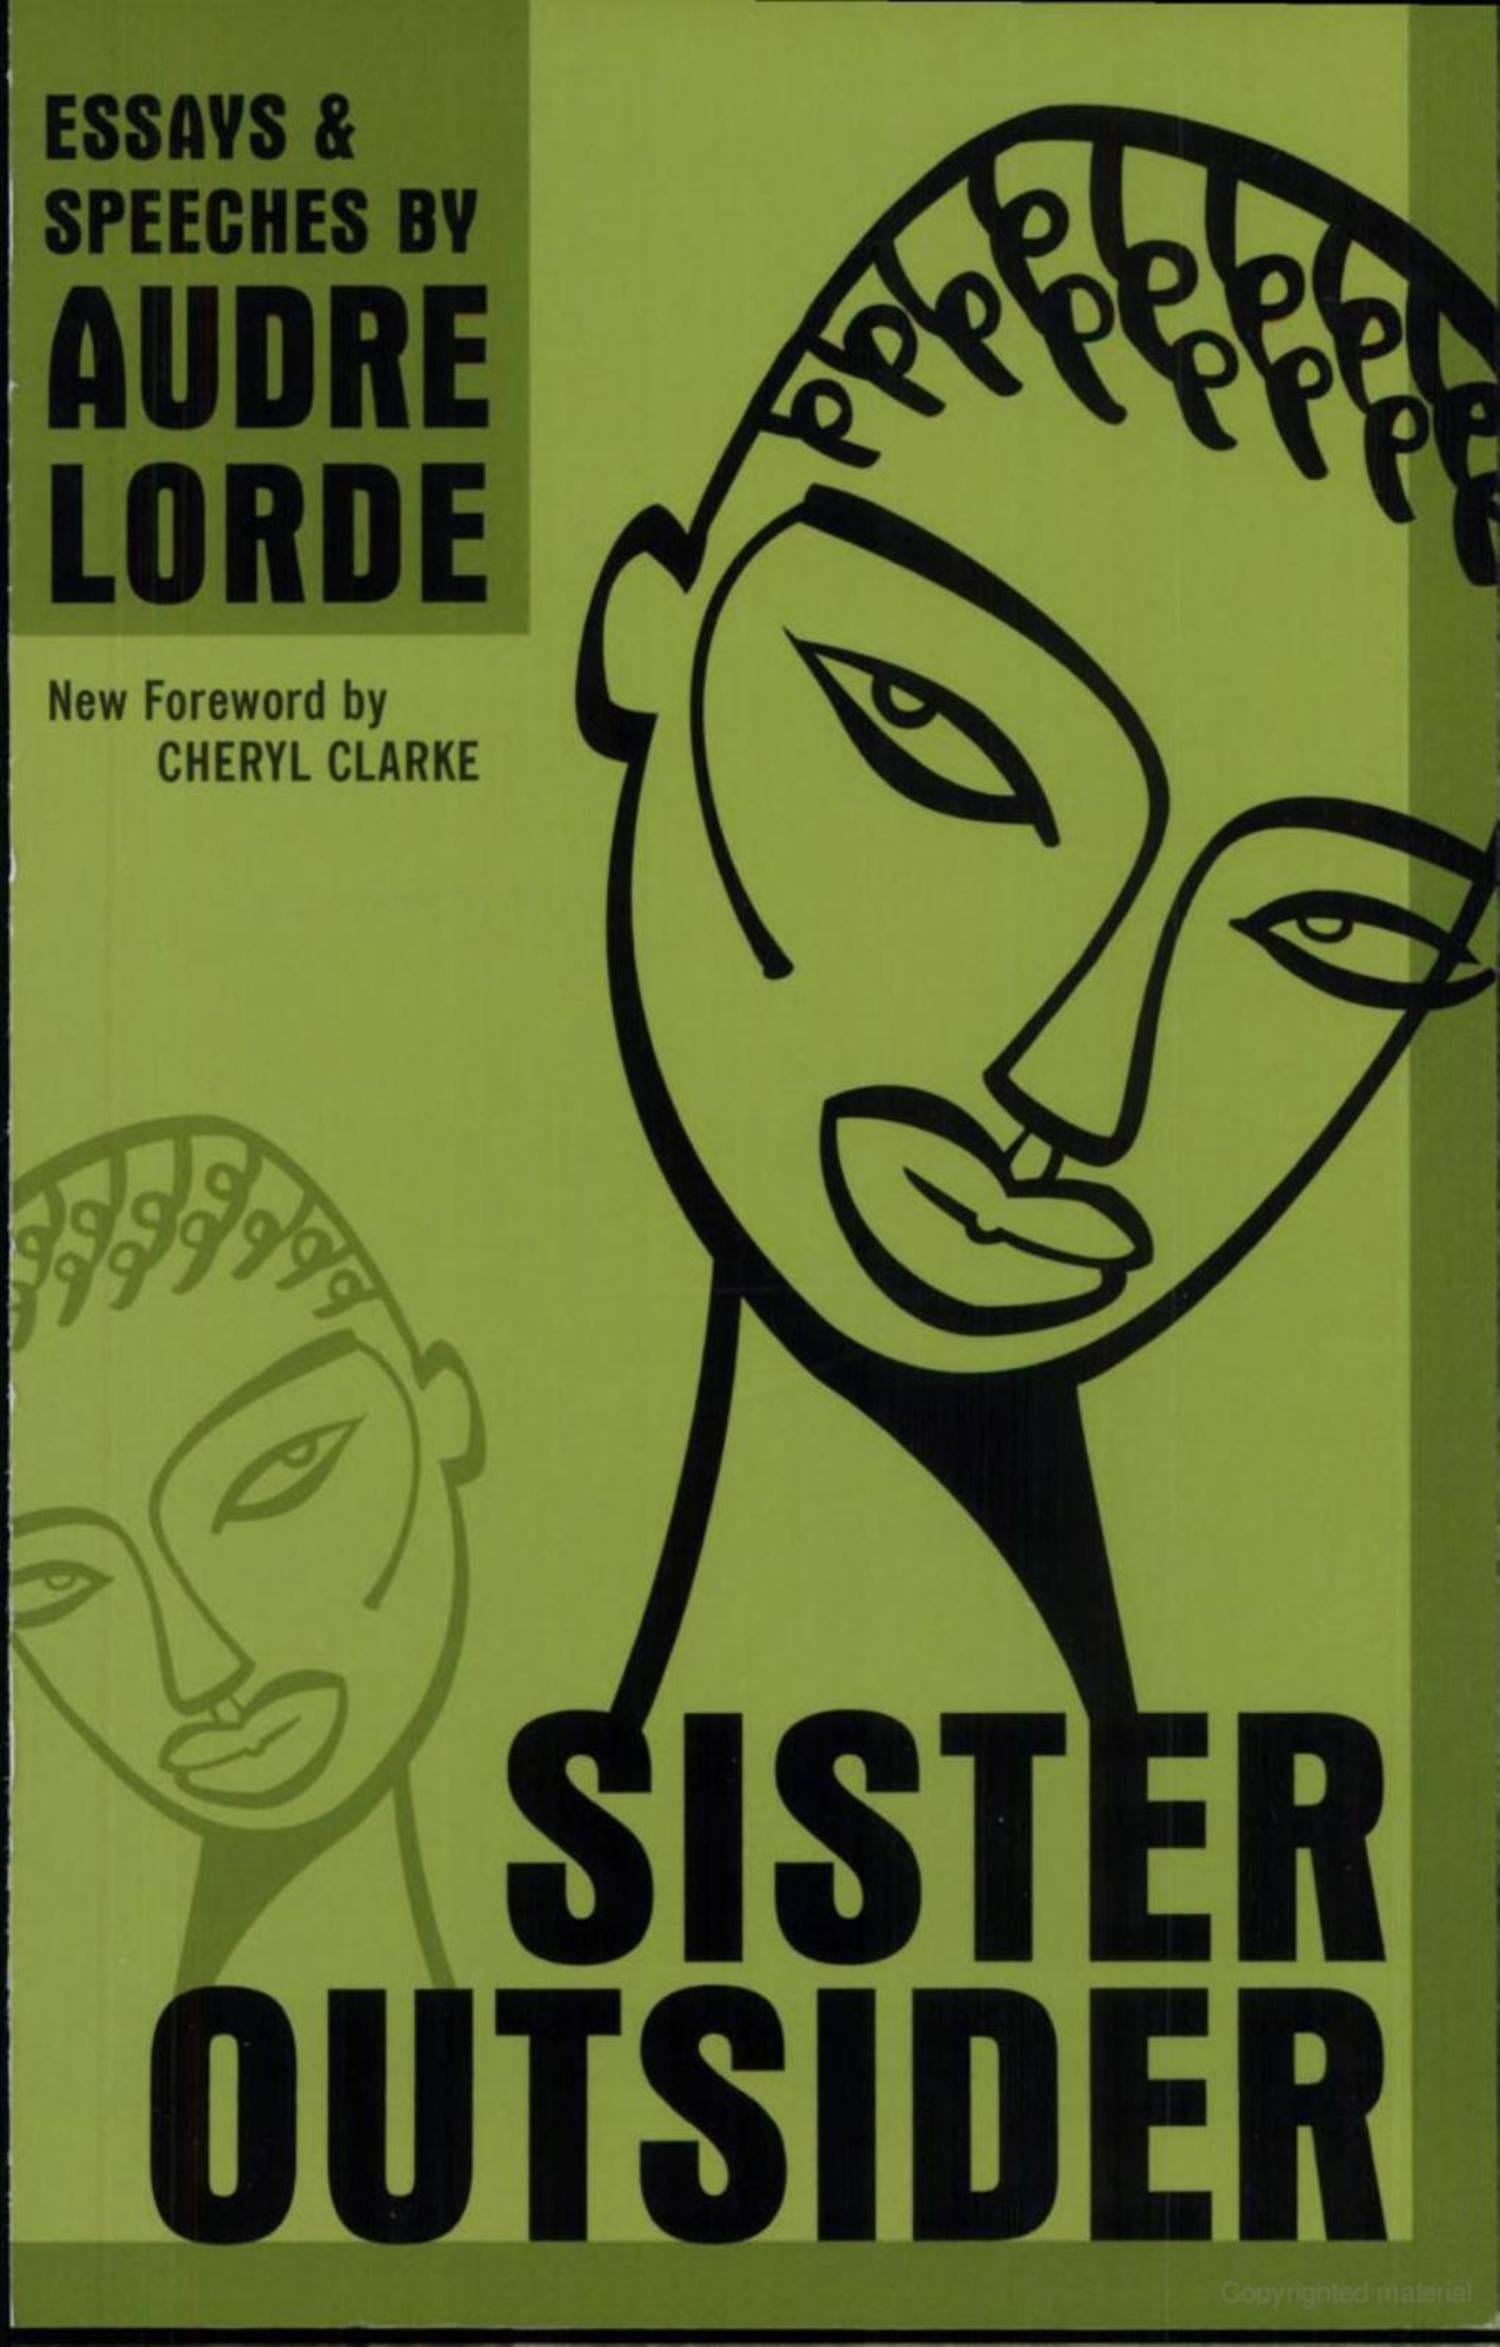 audre lorde essay